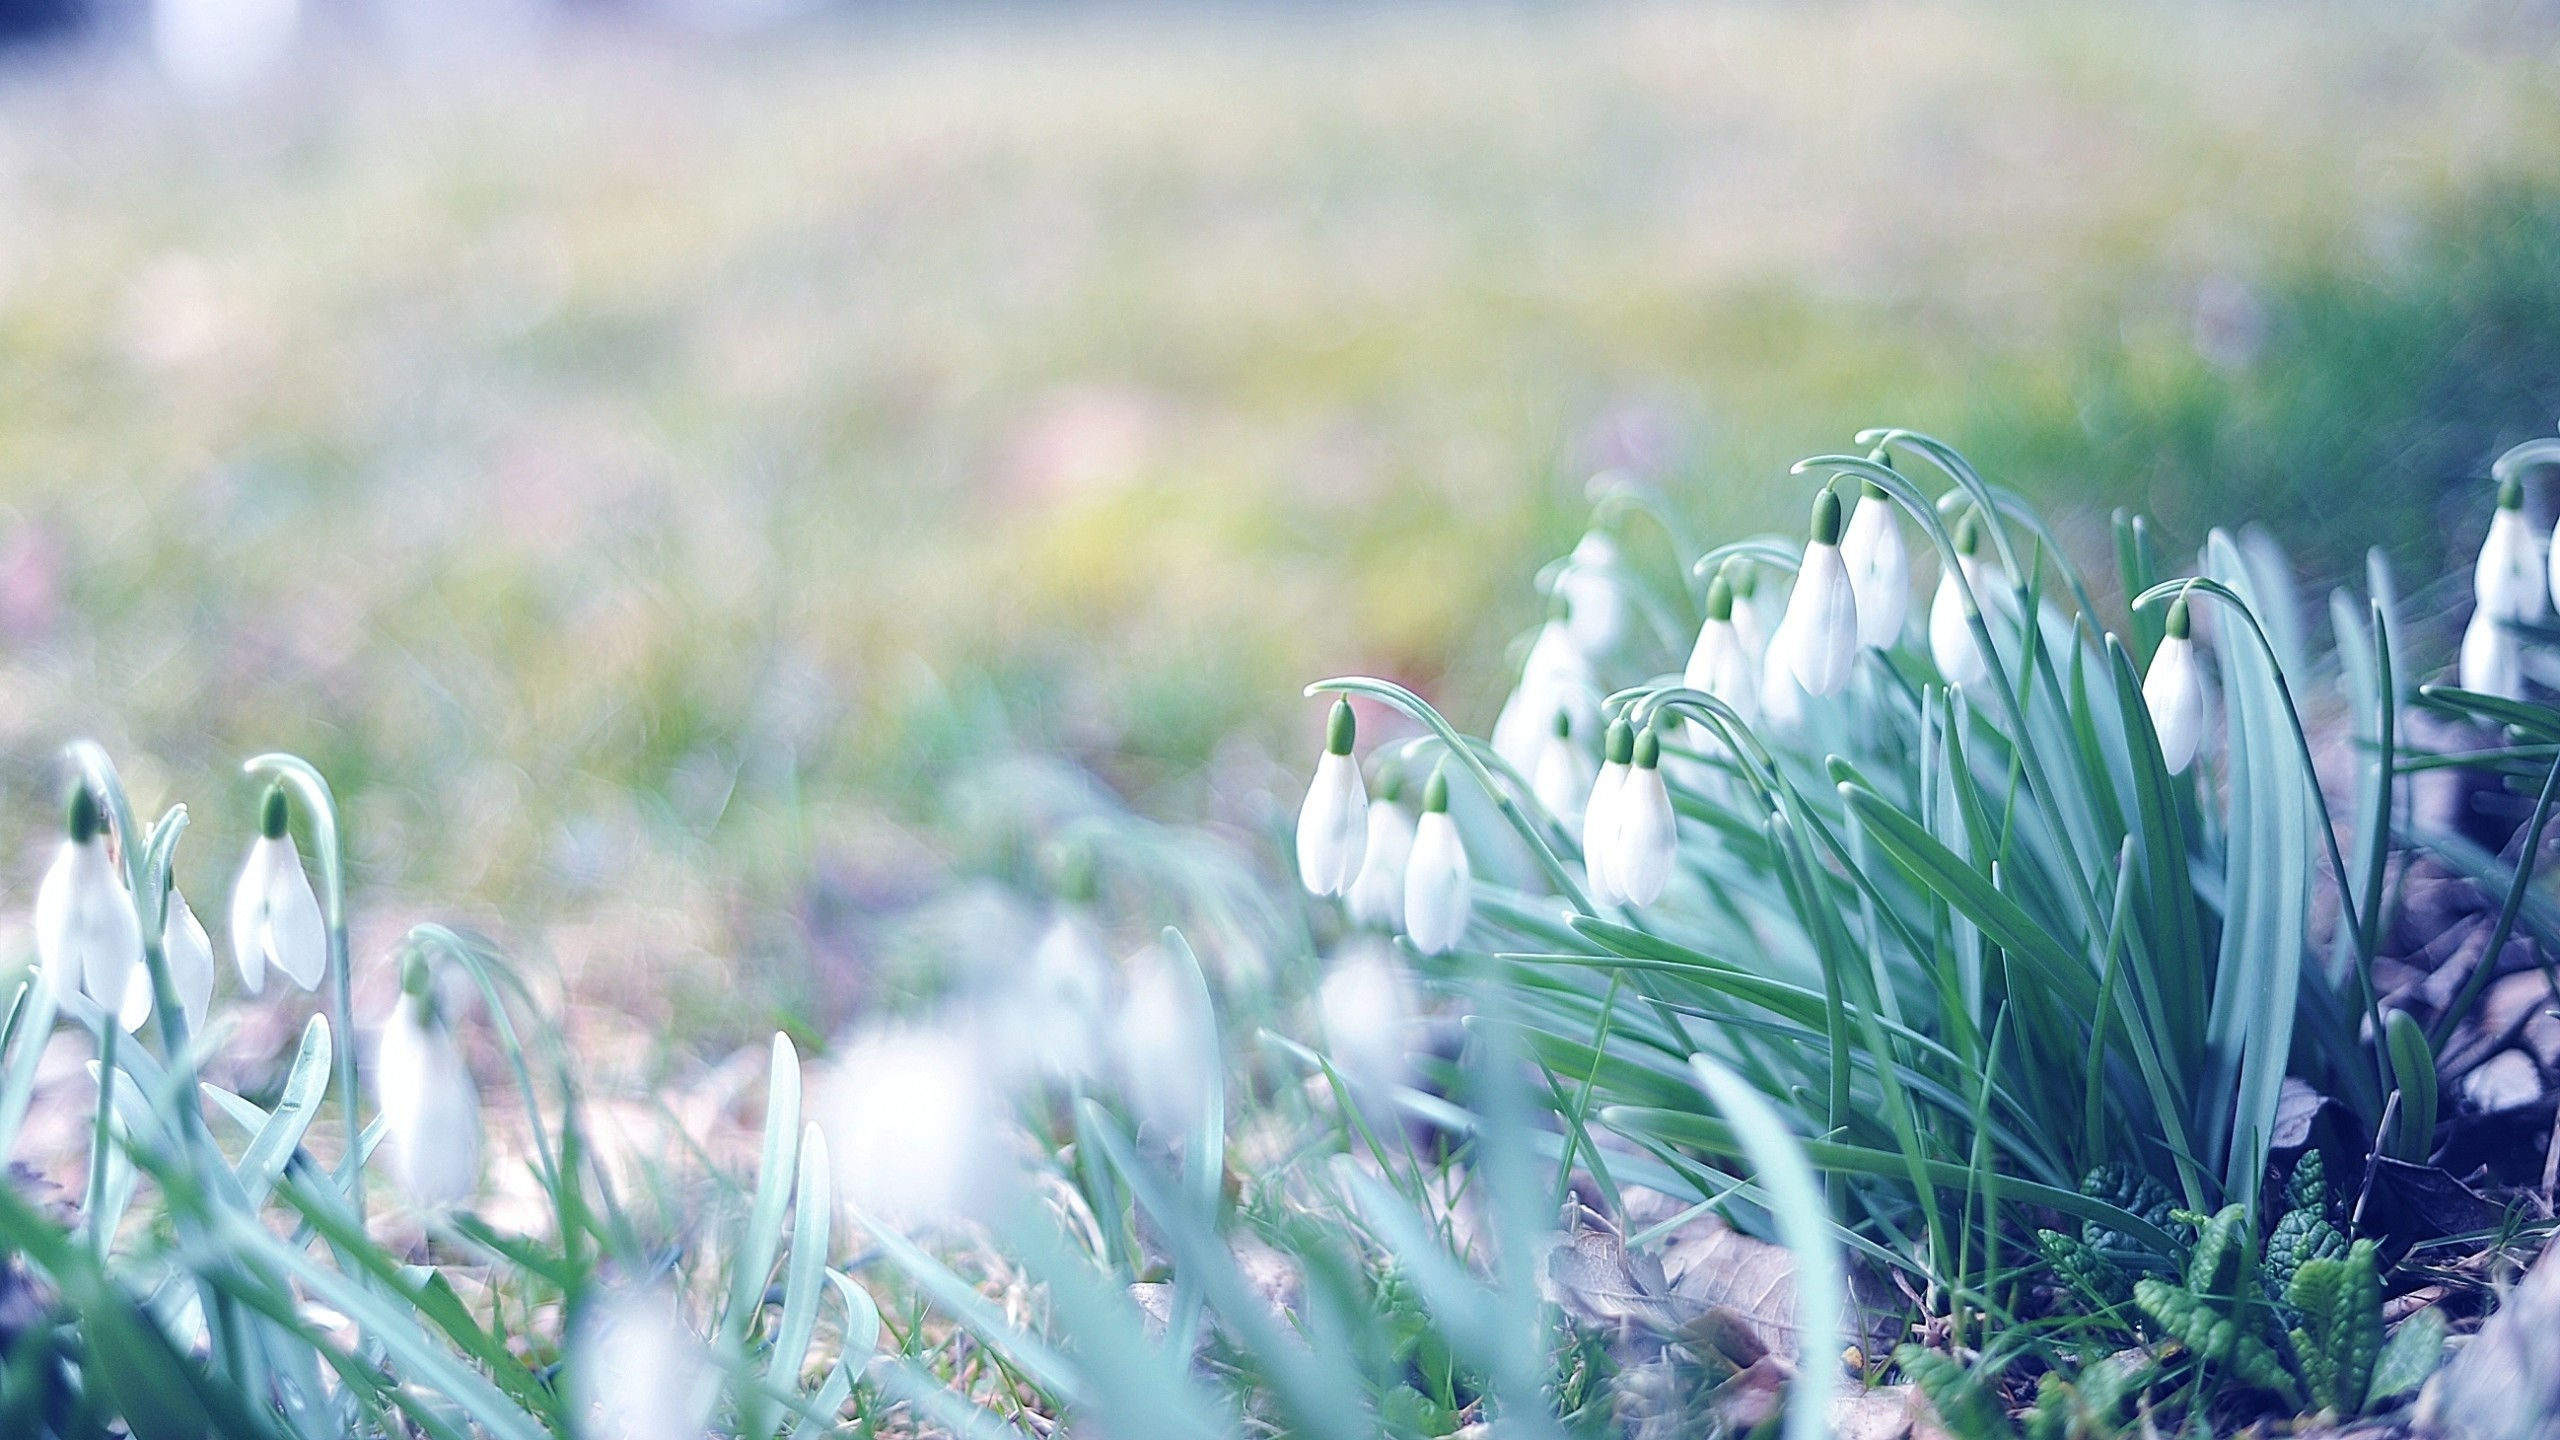 Preview wallpaper spring, snowdrops, grass, light, march 2560×1440